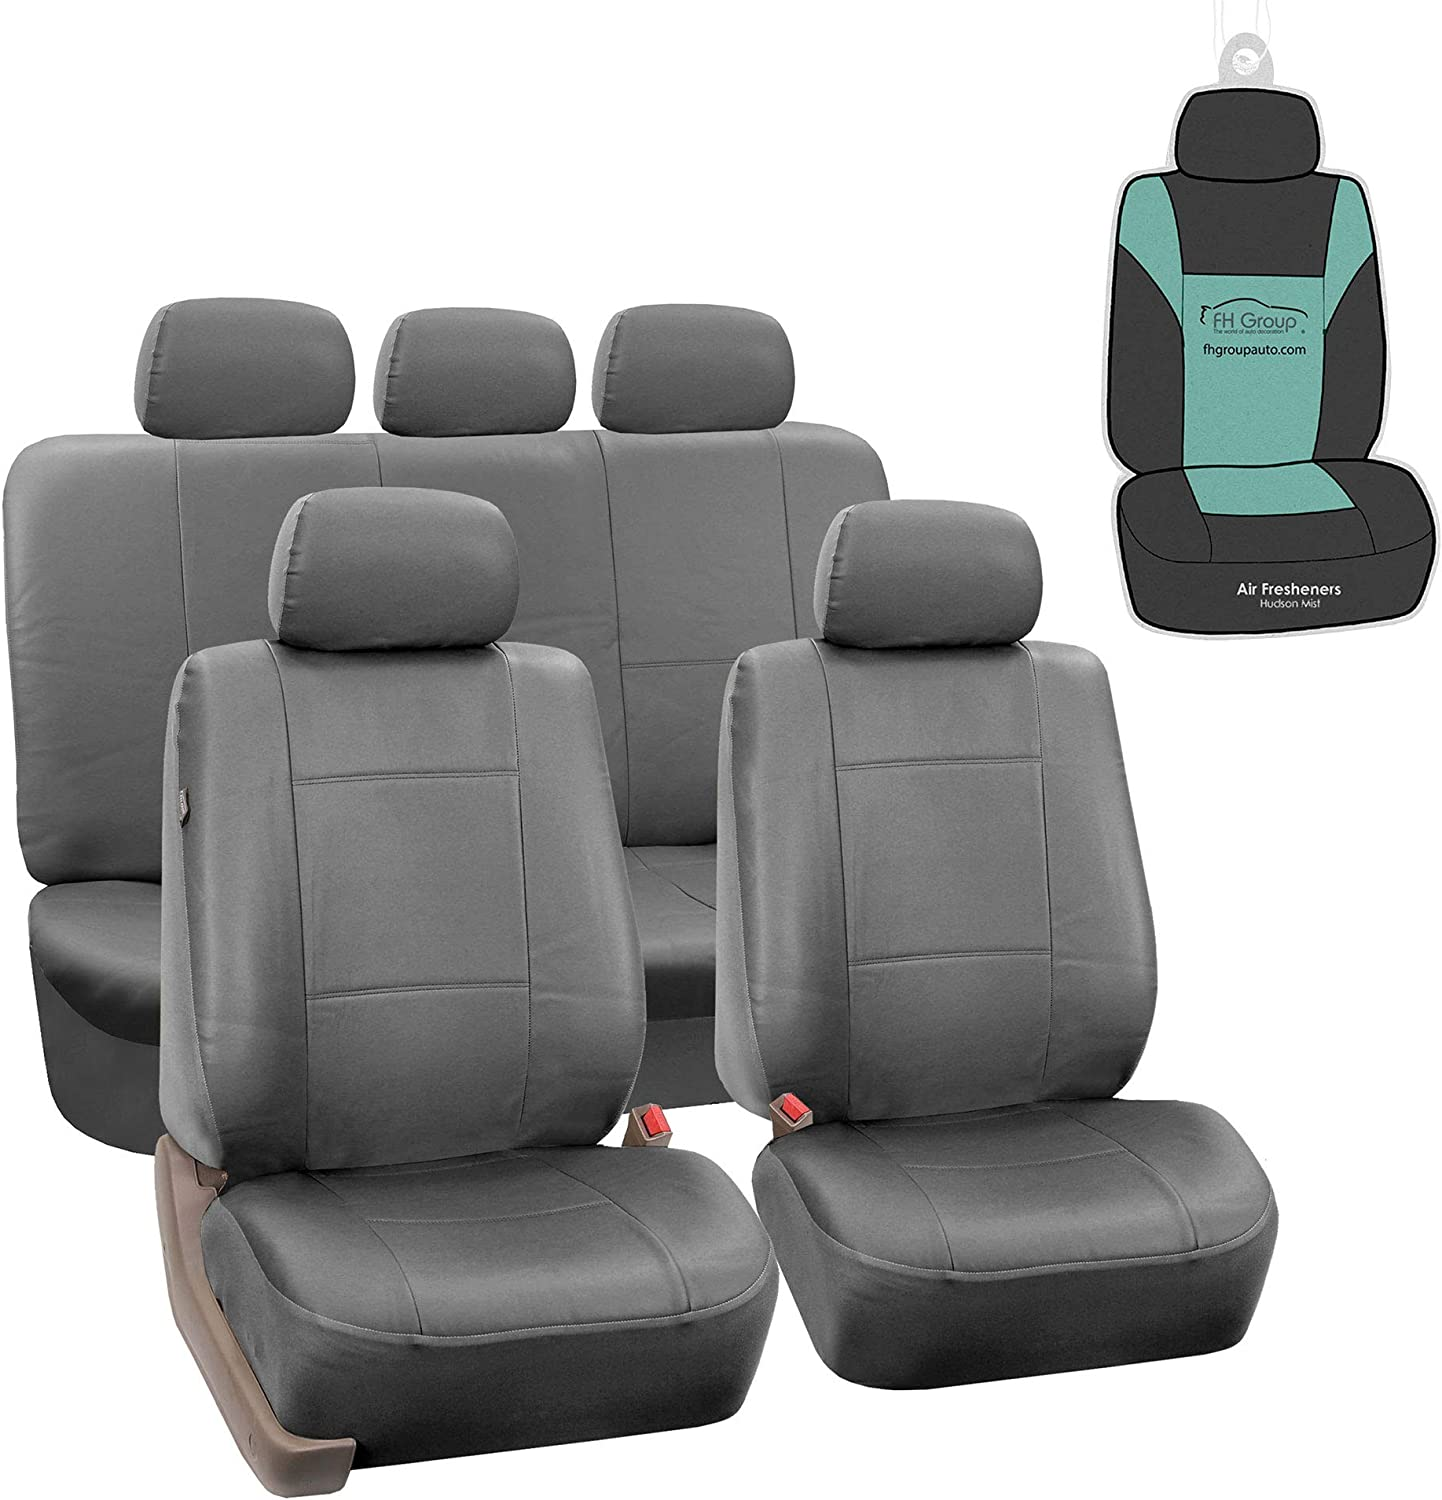 FH Group PU002115 Premium PU Leather Seat Covers (Gray) Full Set with Gift – Universal Fit for Cars Trucks and SUVs